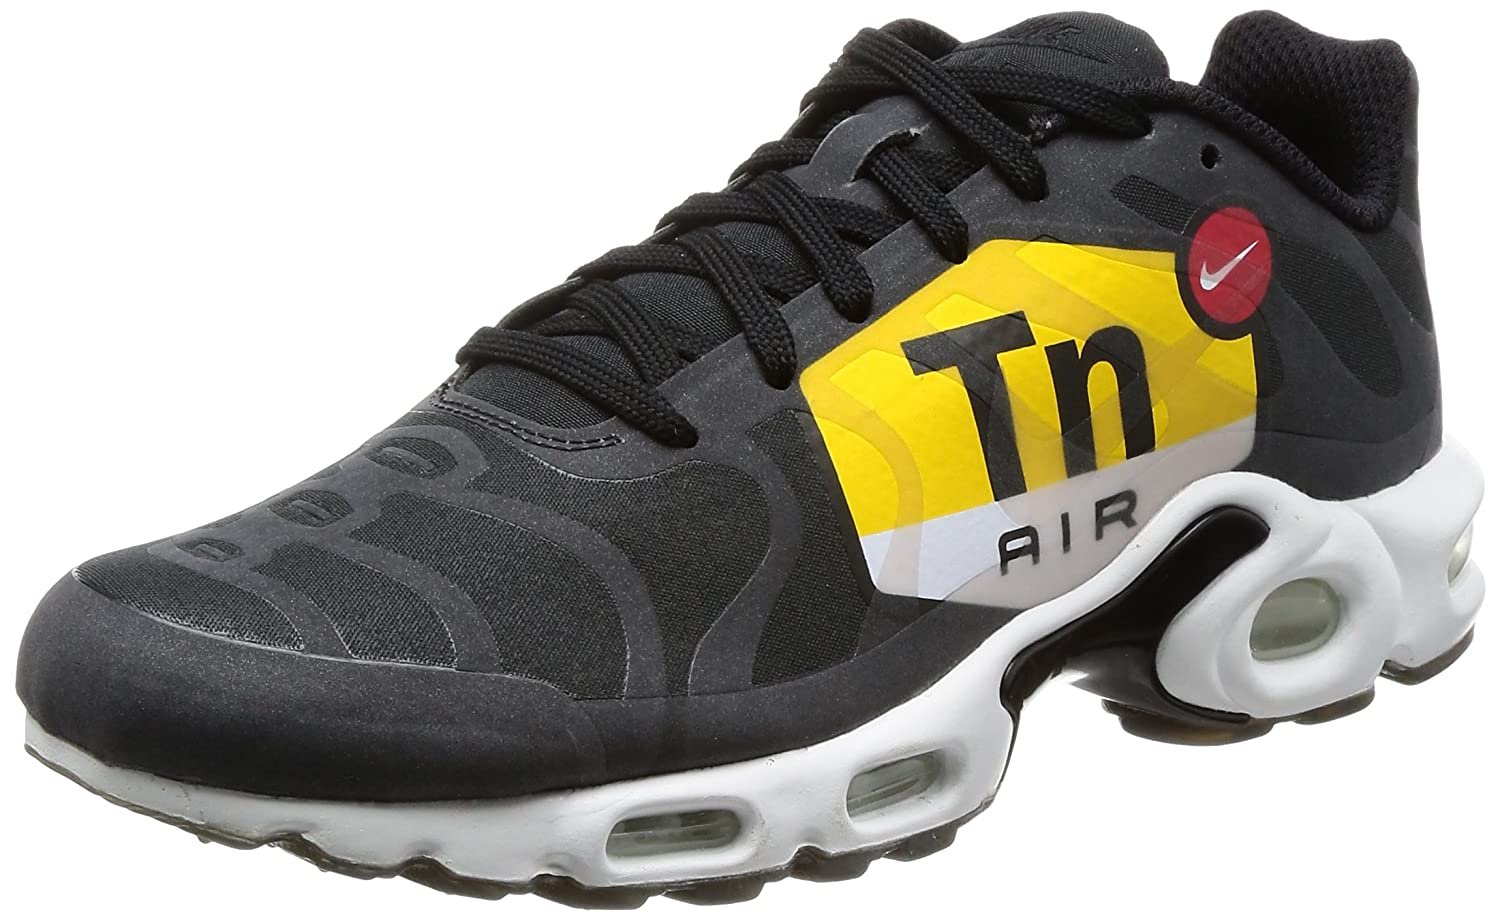 check out 65ee1 7e7c8 Amazon.com  Nike Air Max Plus NS GPX Mens Running Trainers Aj0877 Sneakers  Shoes  Athletic